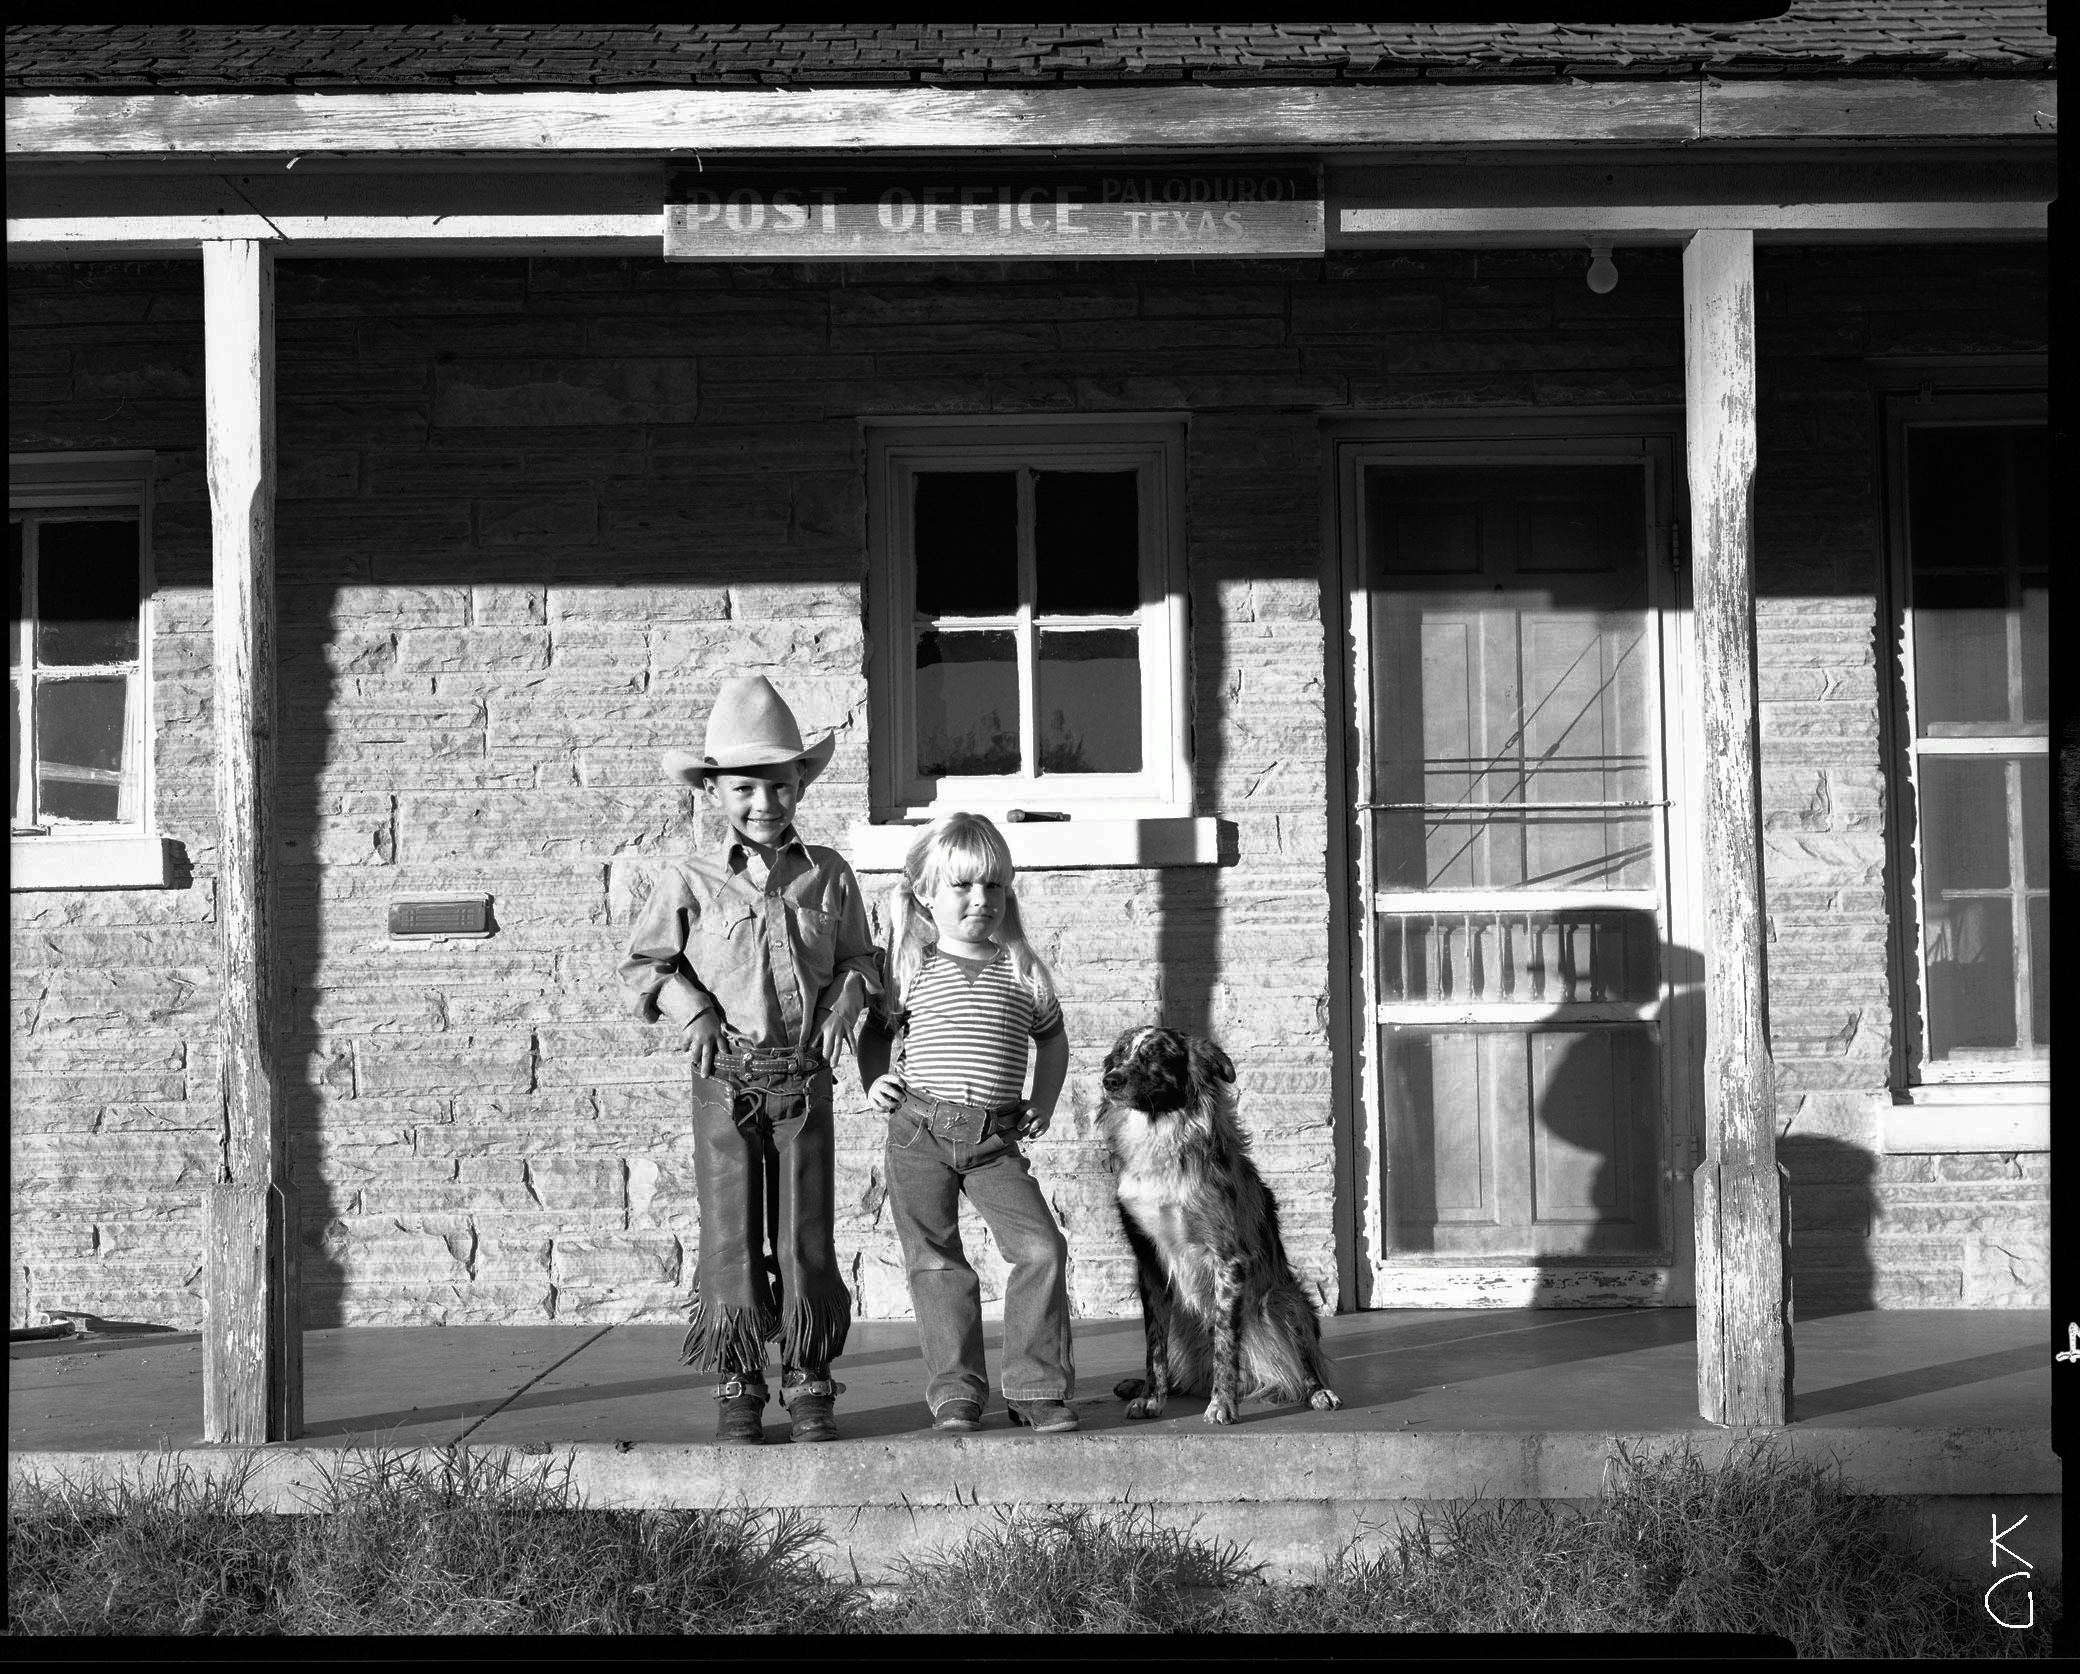 Post Office, The Panhandle 1987